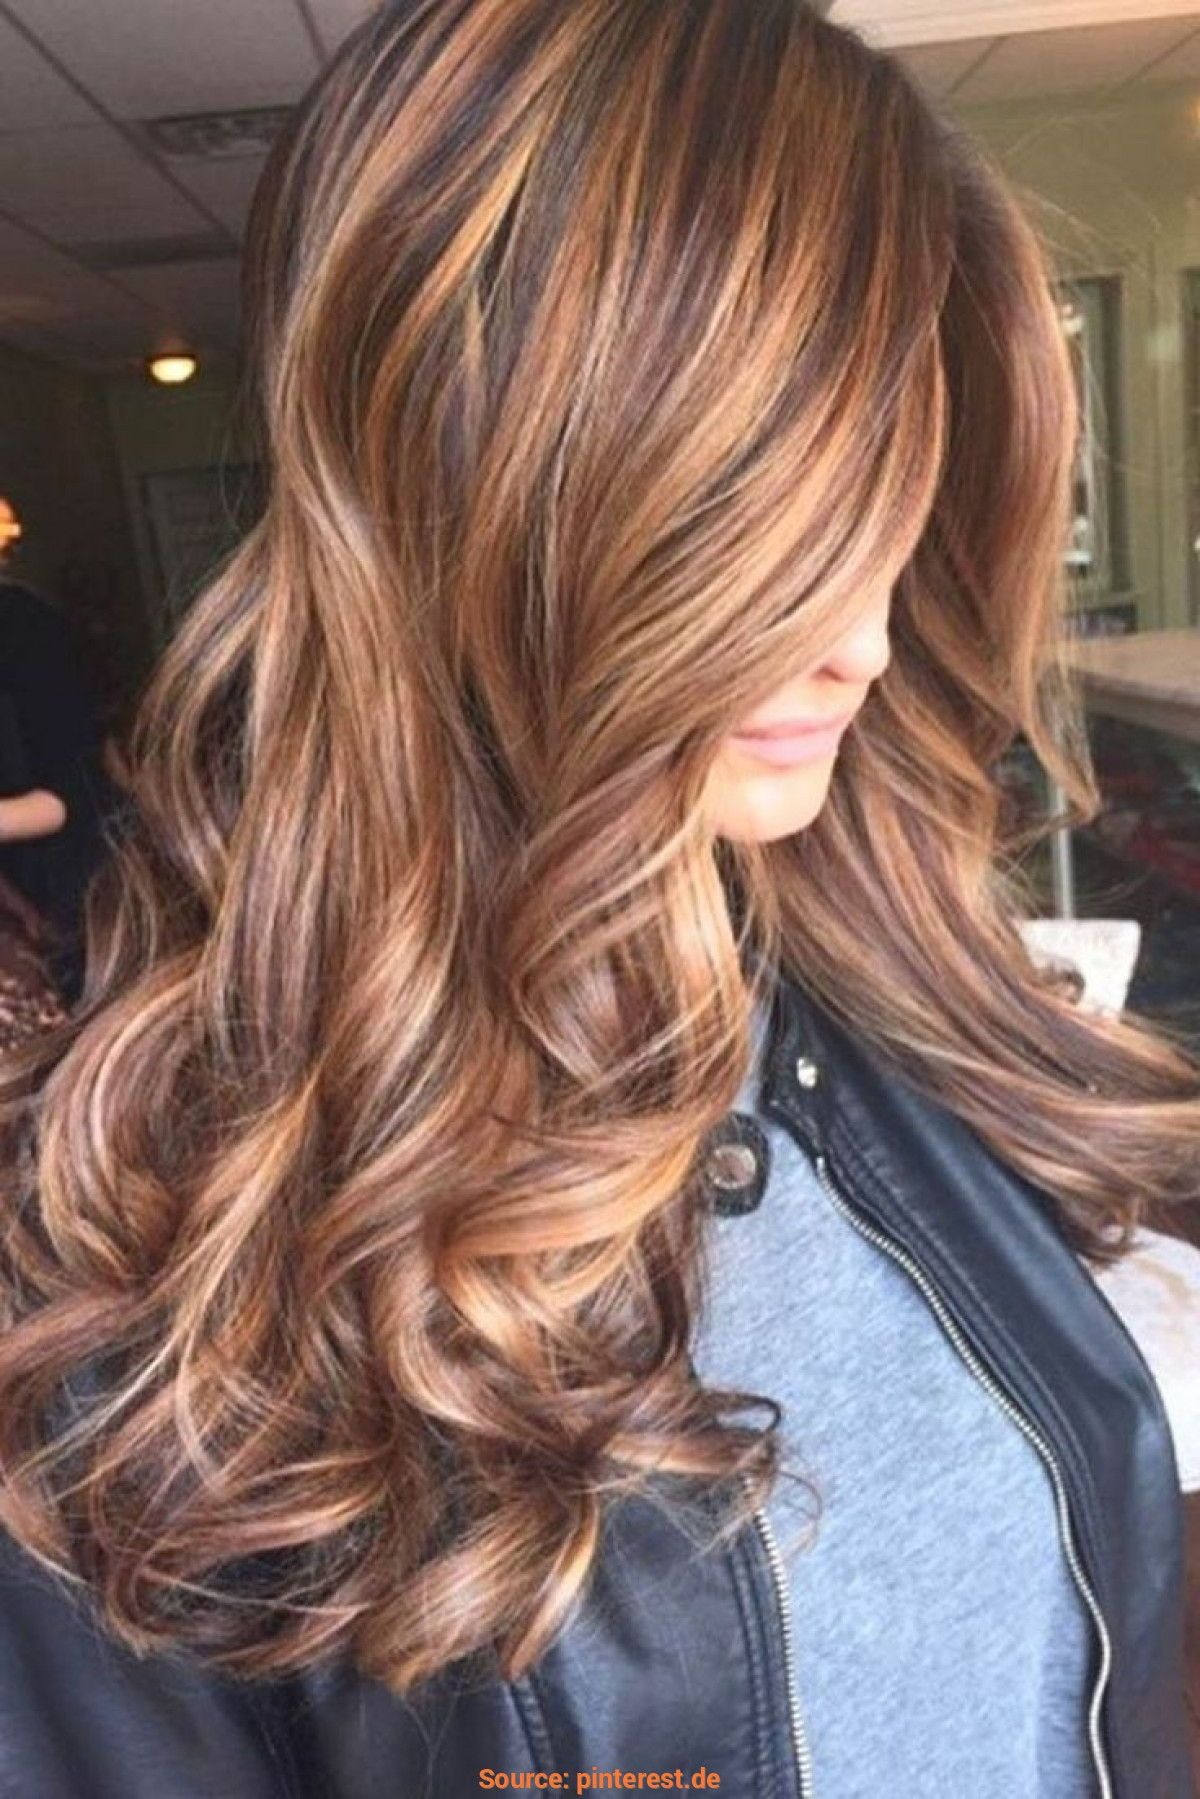 5 Best Celebrity Hair Colors To Try